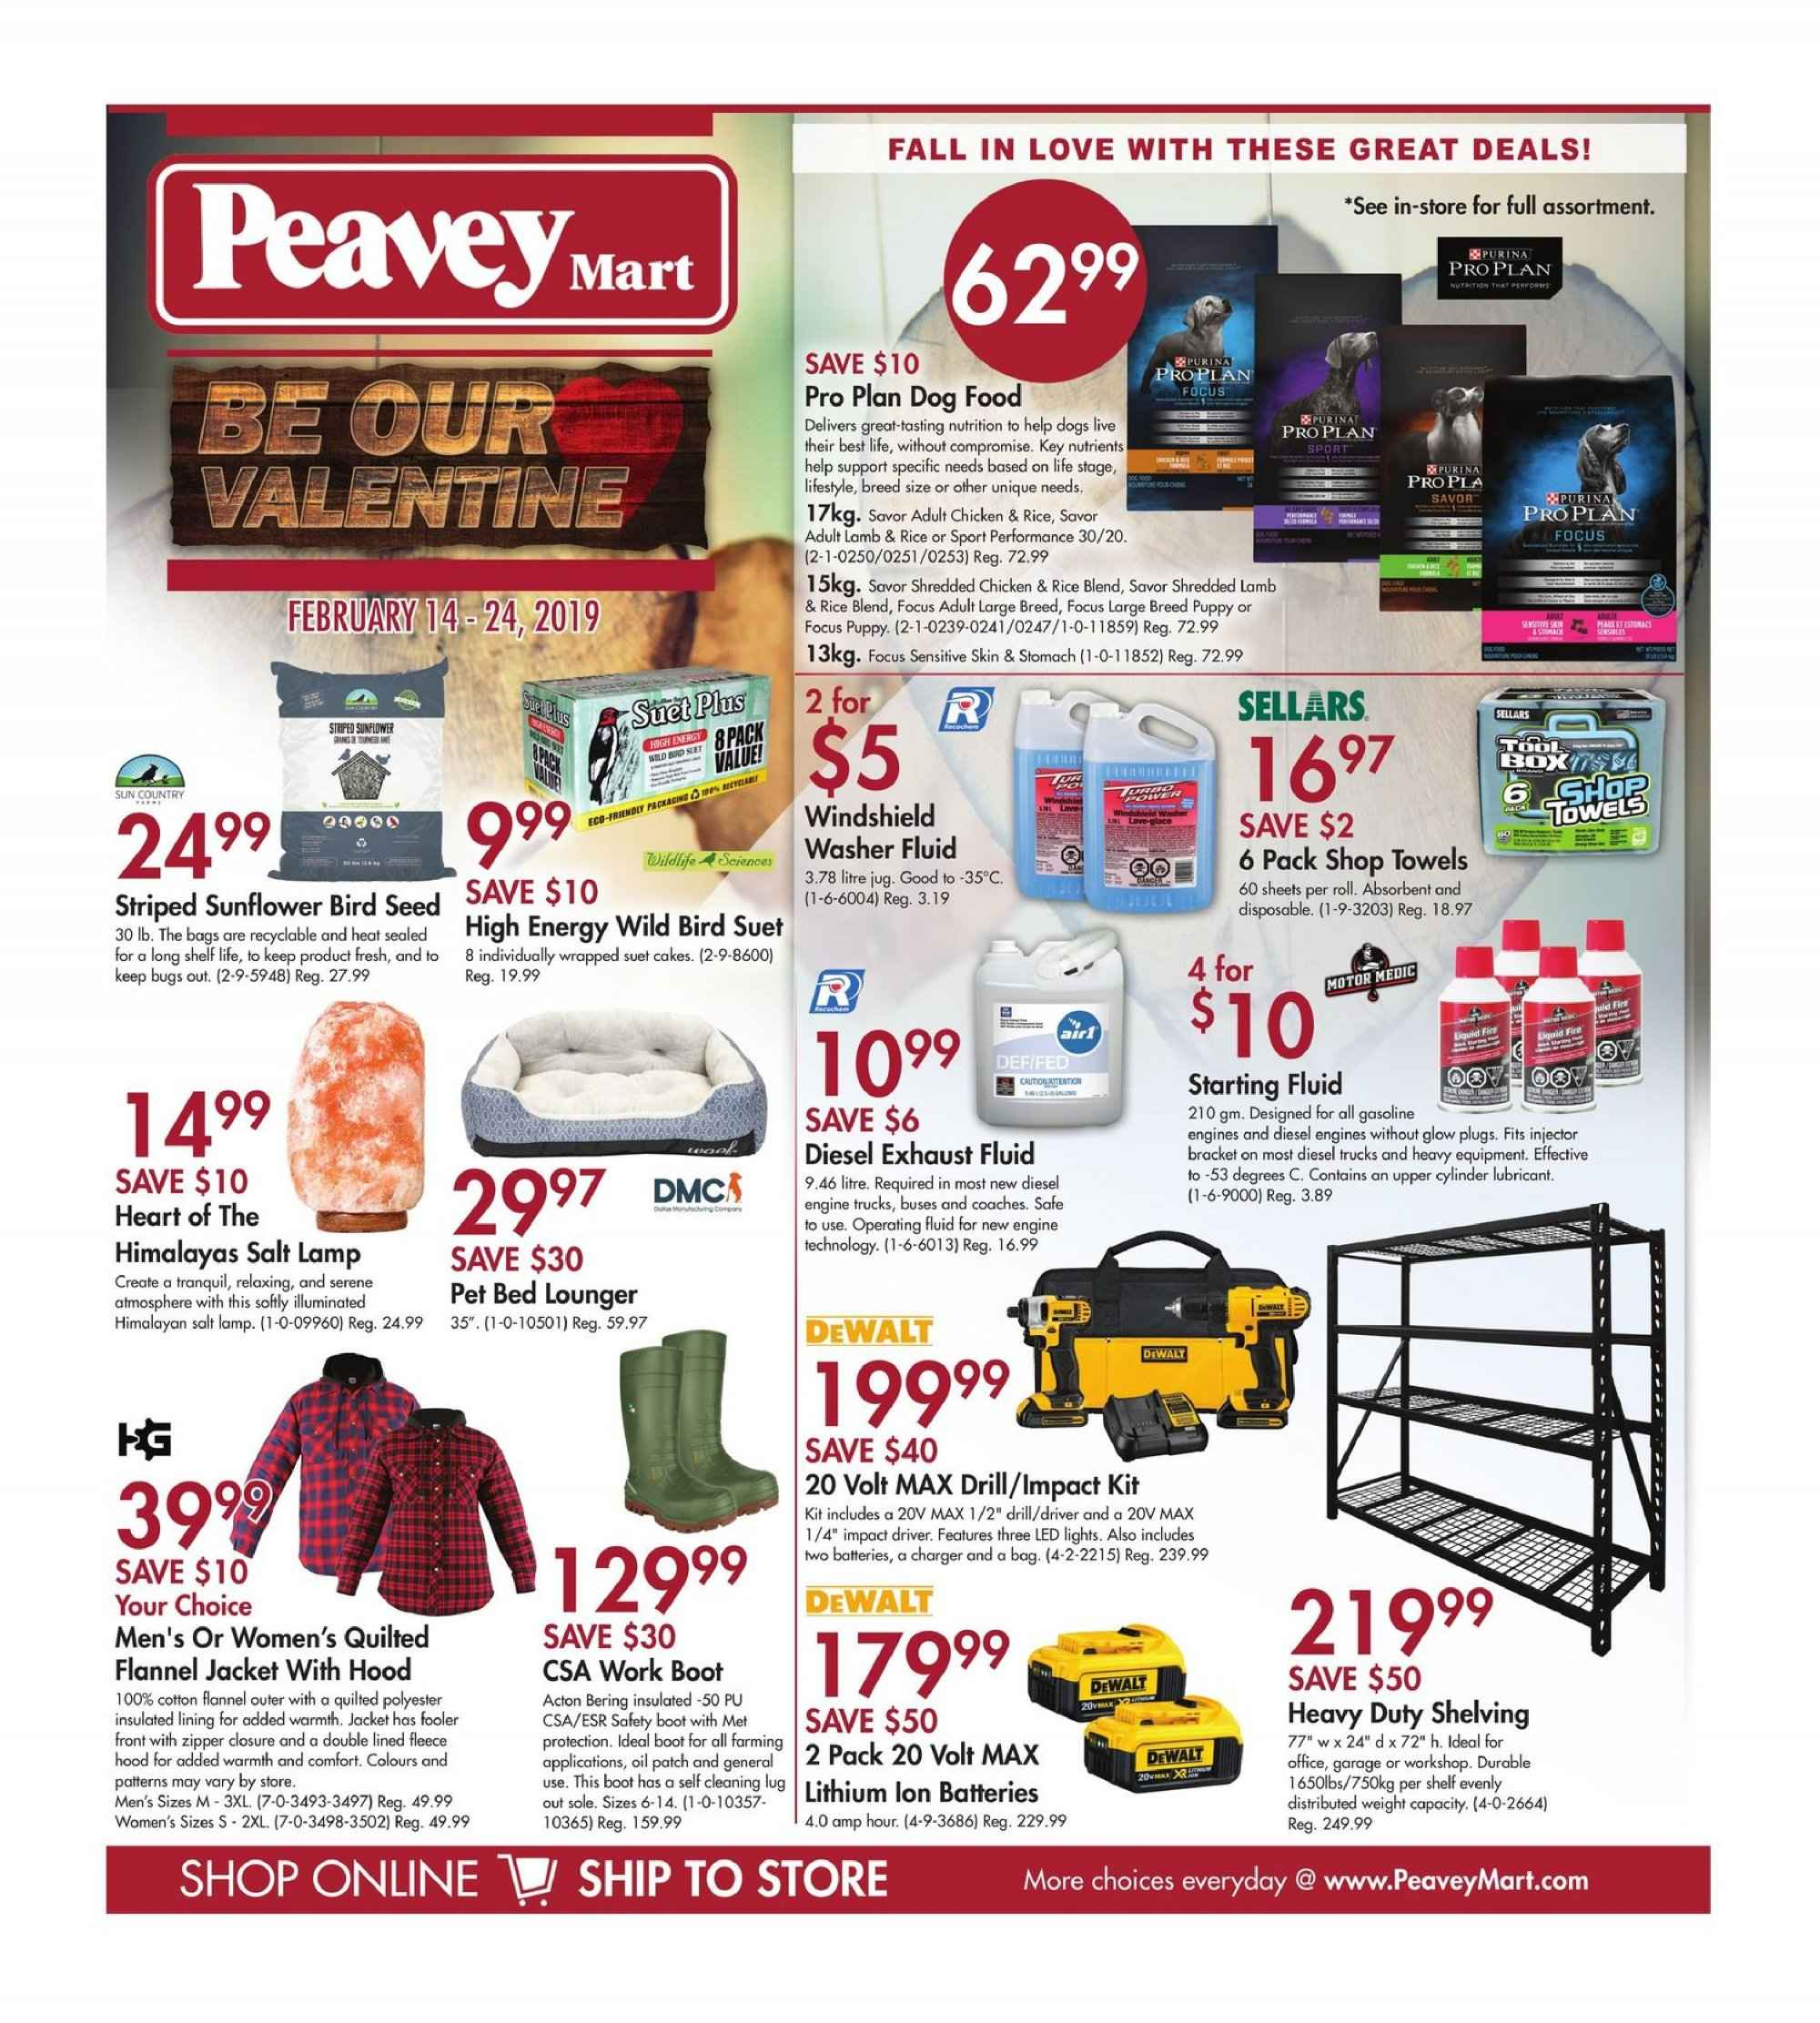 Peavey Mart Flyer - February 14, 2019 - February 24, 2019 - Sales products - animal food, bag, battery, bed, cotton, dewalt, dog food, drill, flannel, fluid, lamb meat, lamp, led light, lubricant, rice, safe, salt lamp, shelf, sole, suet, towel, hoodie, impact driver, jacket, pro plan, charger, chicken, salt, seed, support. Page 1.